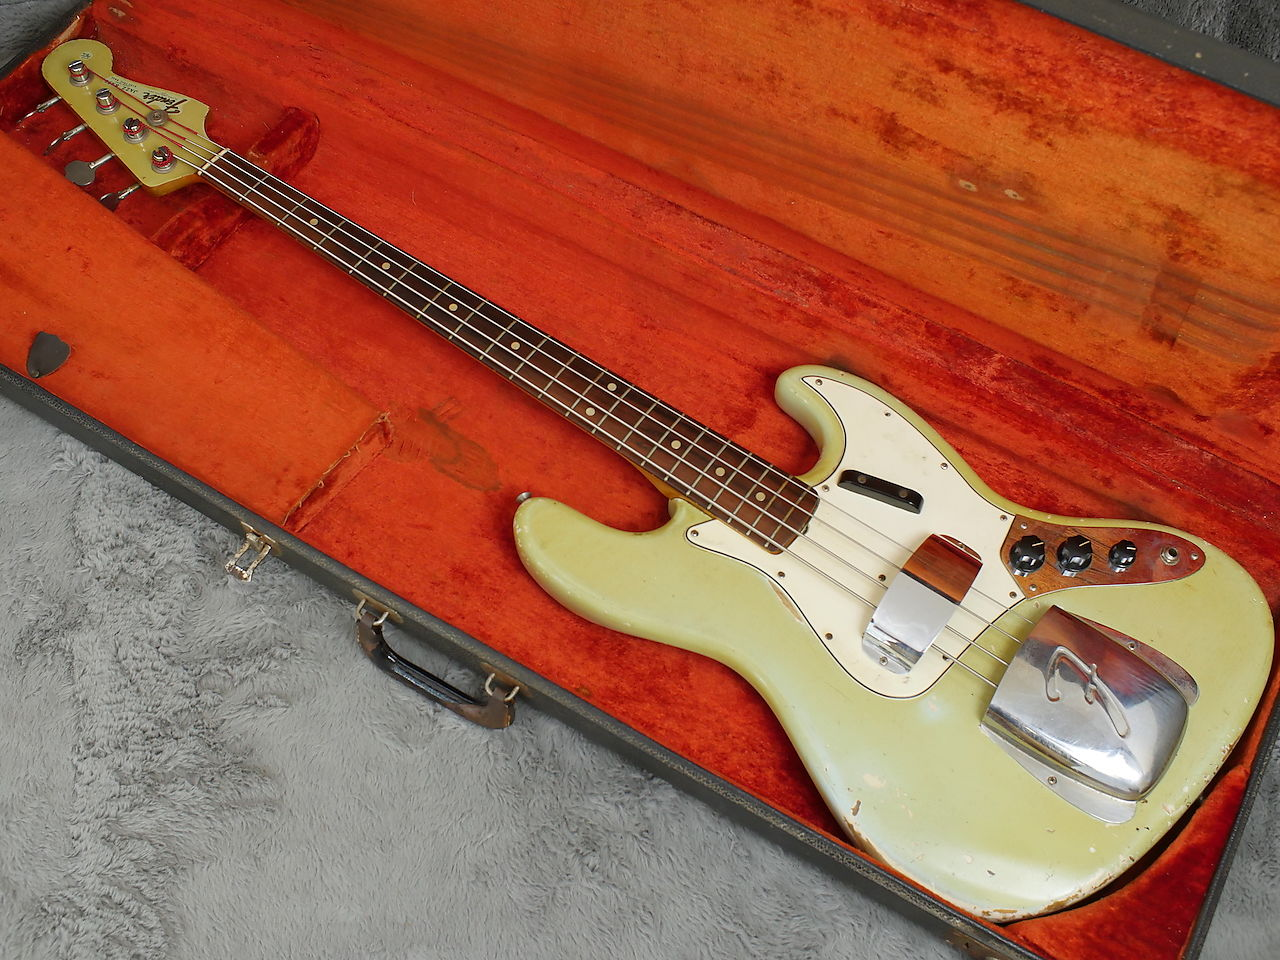 1965 FENDER JAZZ BASS SONIC BLUE